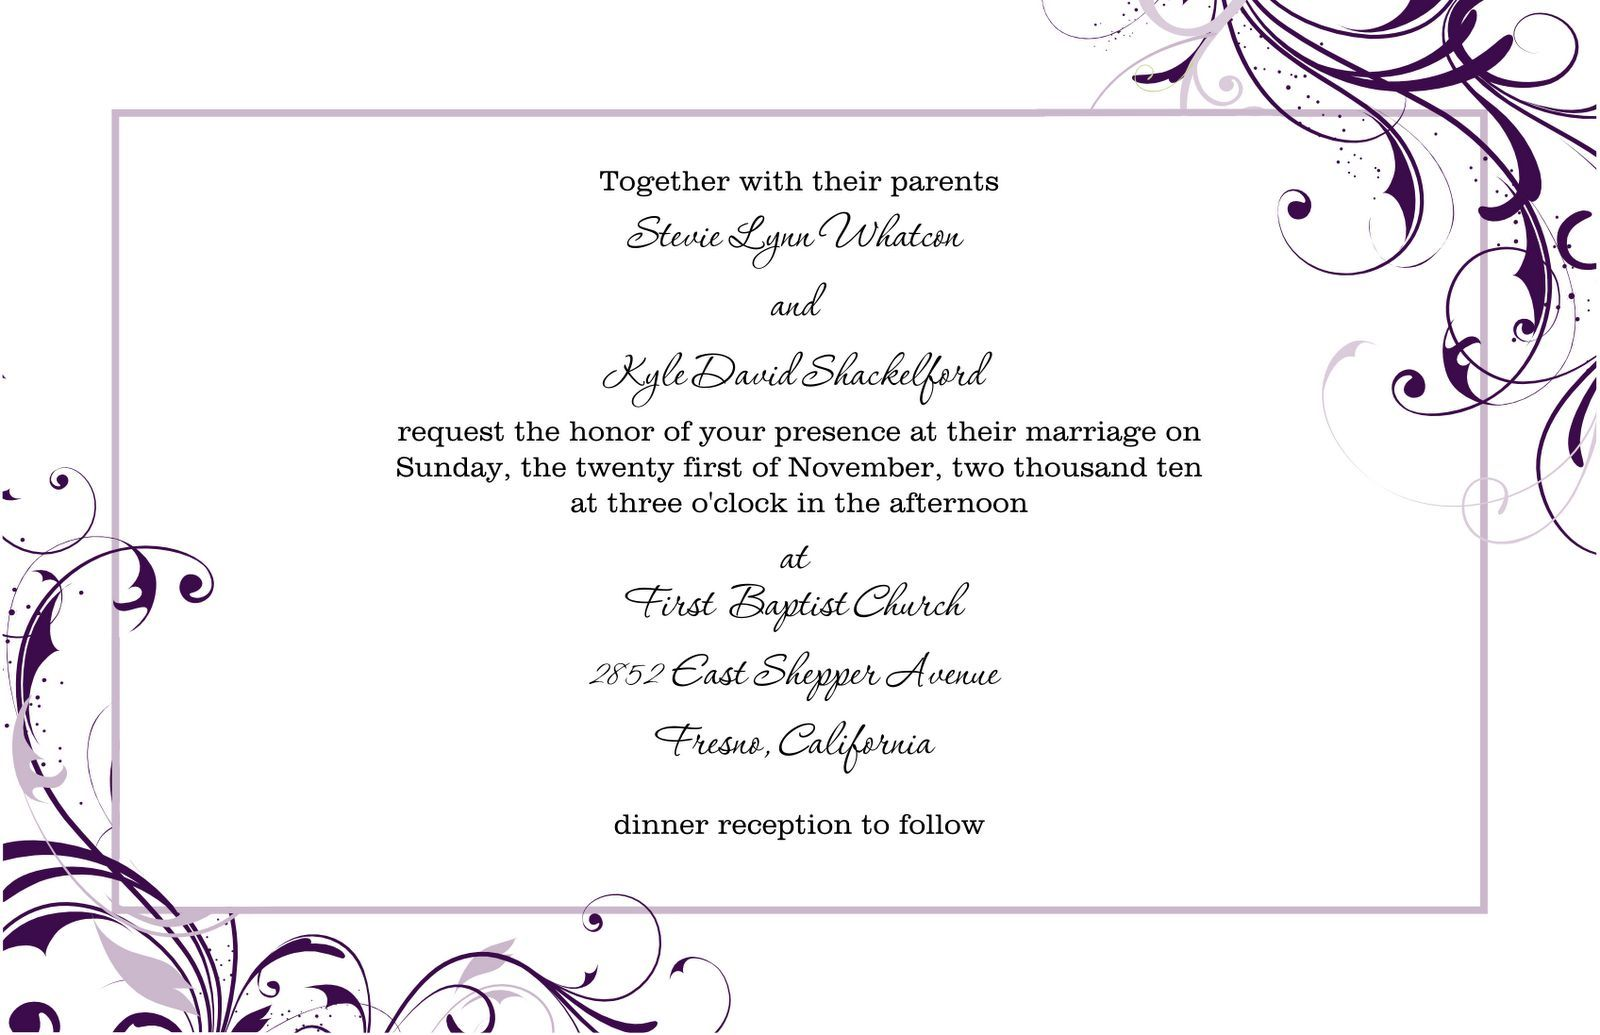 Free Blank Wedding Invitation Templates For Microsoft Word  Free Microsoft Word Invitation Templates